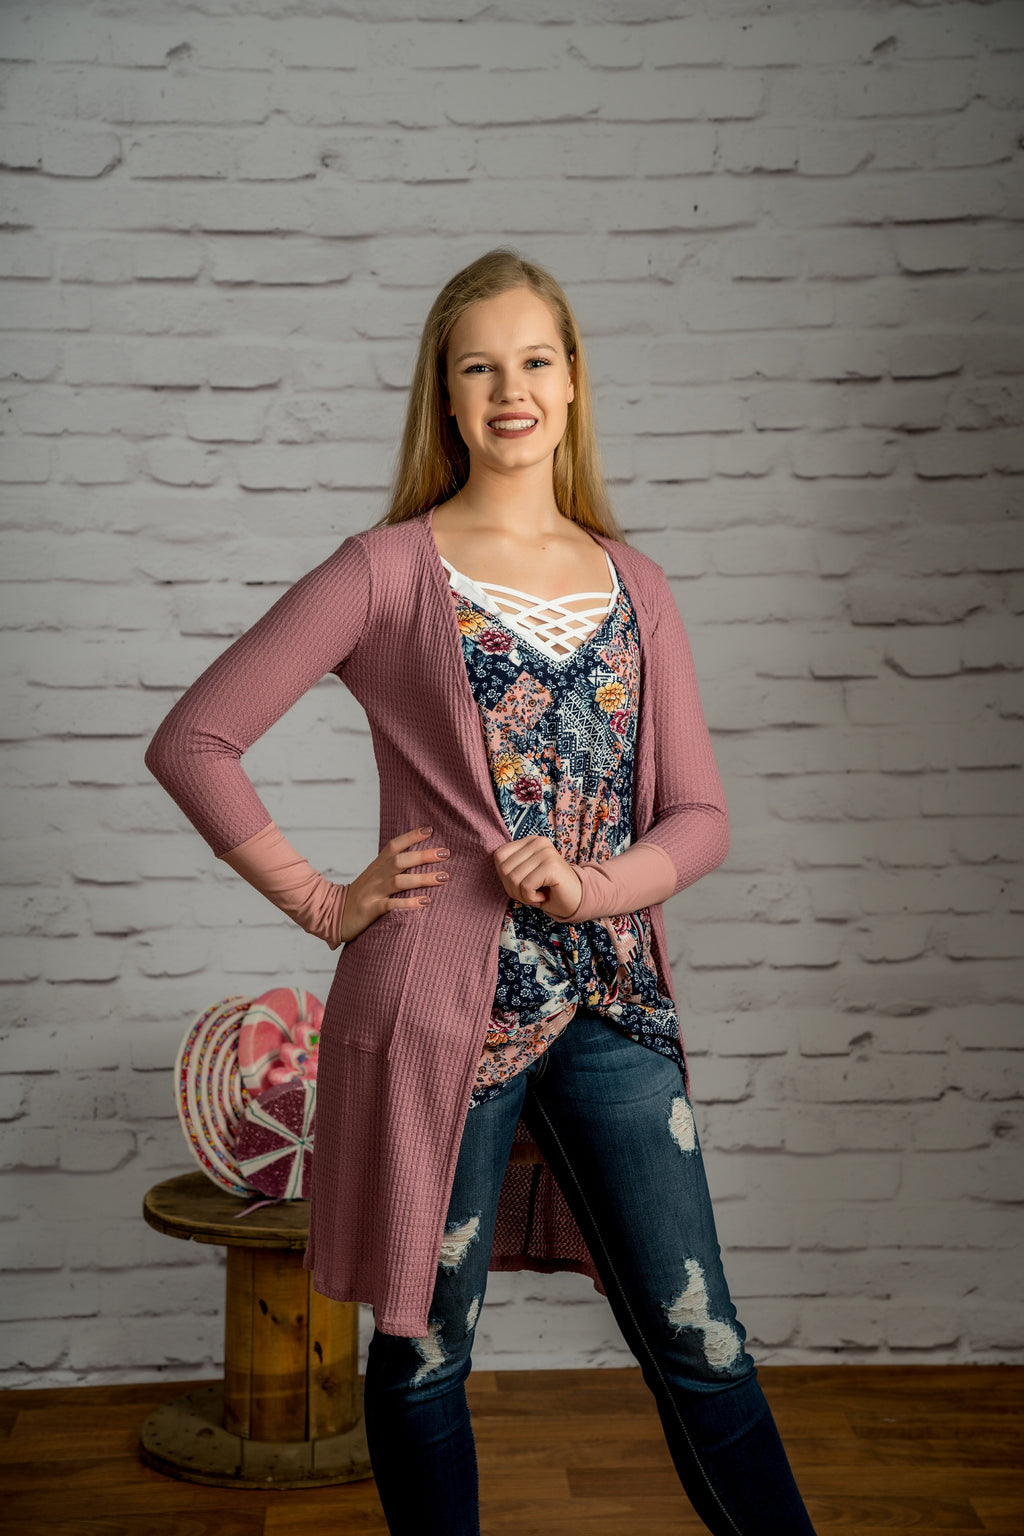 Gonna Love It Cardigan - Dusty Pink - FINAL SALE CLEARANCE